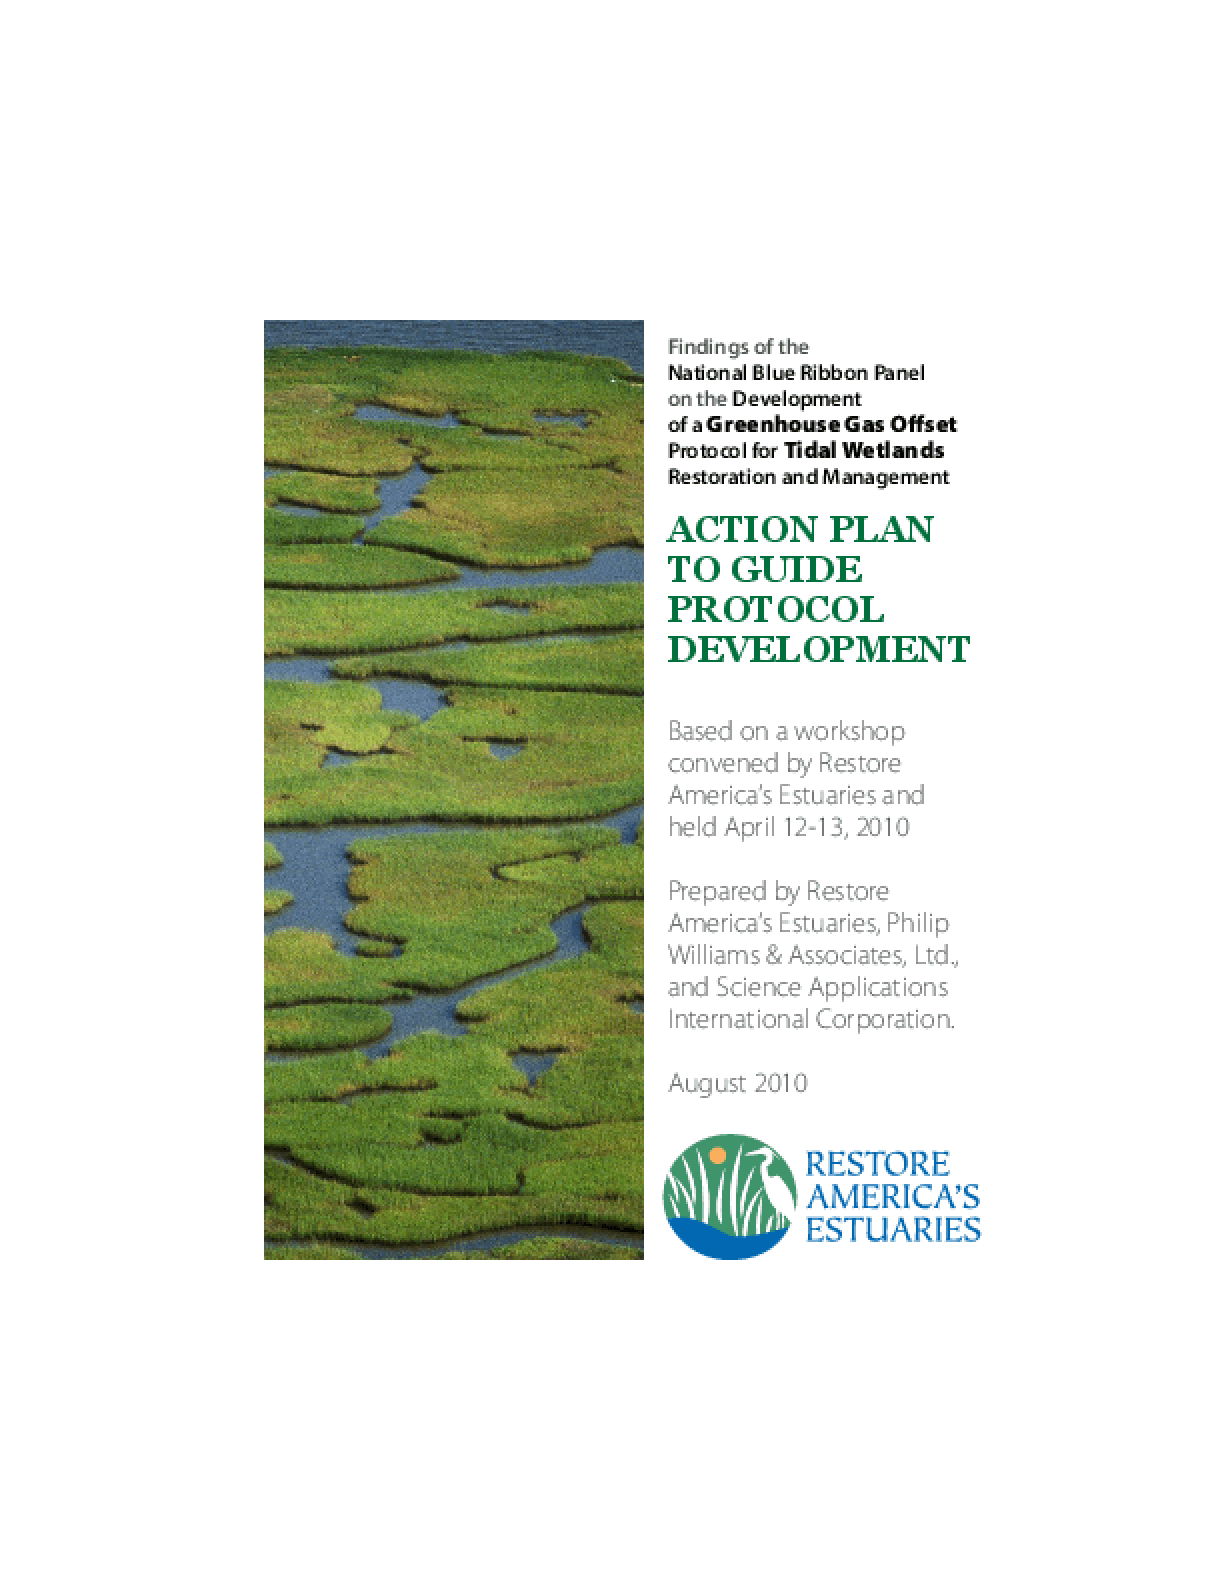 Findings of the National Blue Ribbon Panel on the Development of a Greenhouse Gas Offset Protocol for Tidal Wetlands Restoration and Management